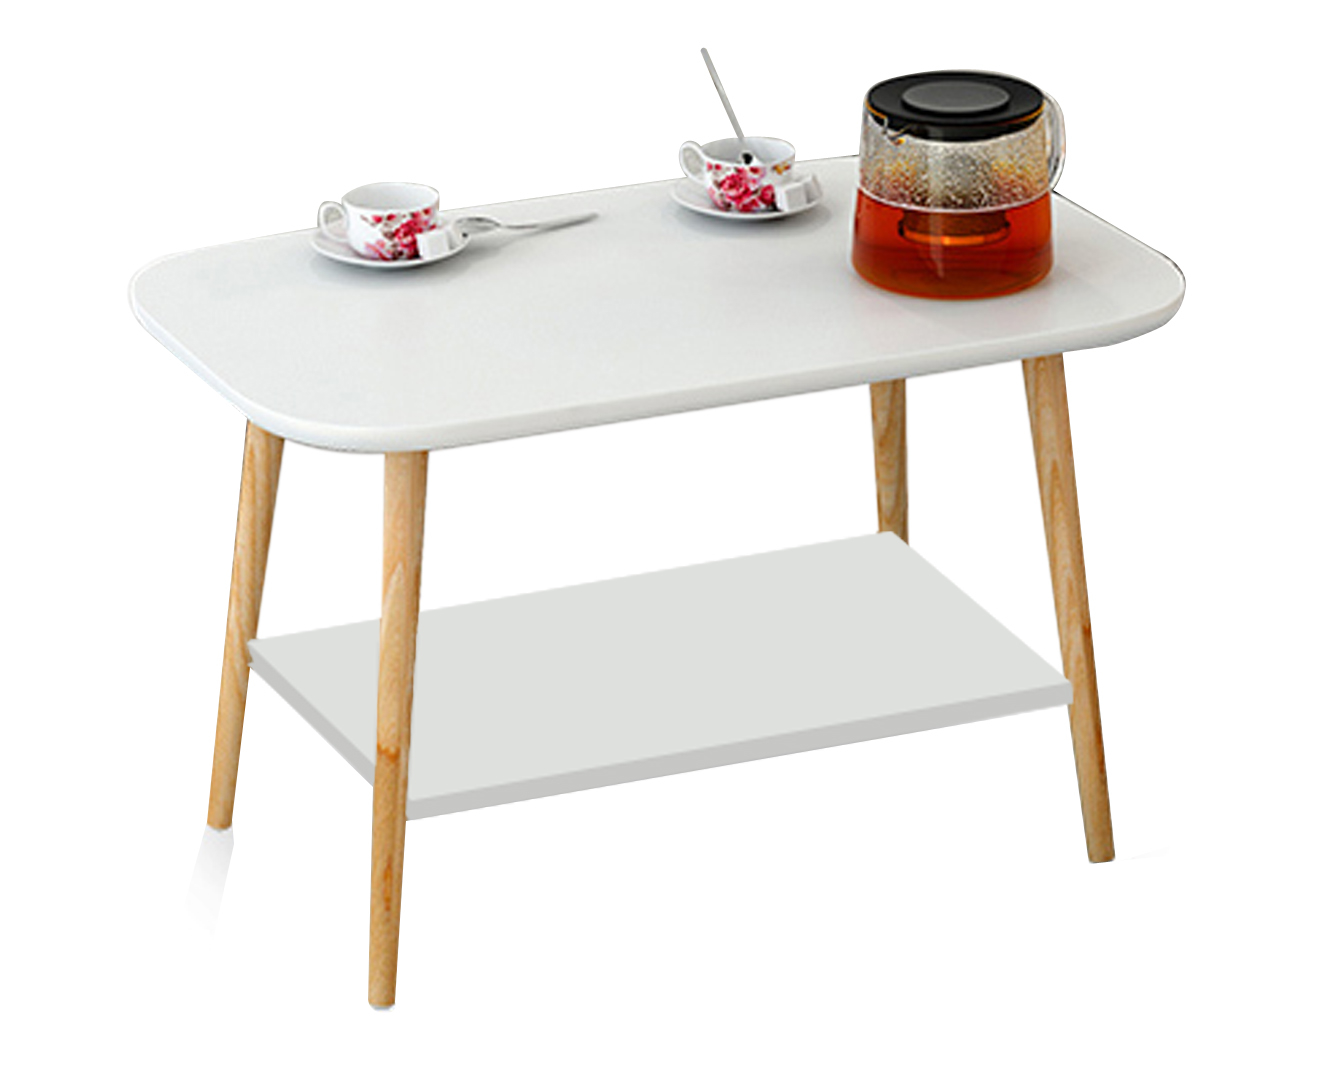 Modern style coffee table wooden top storage white two for 60s style coffee table